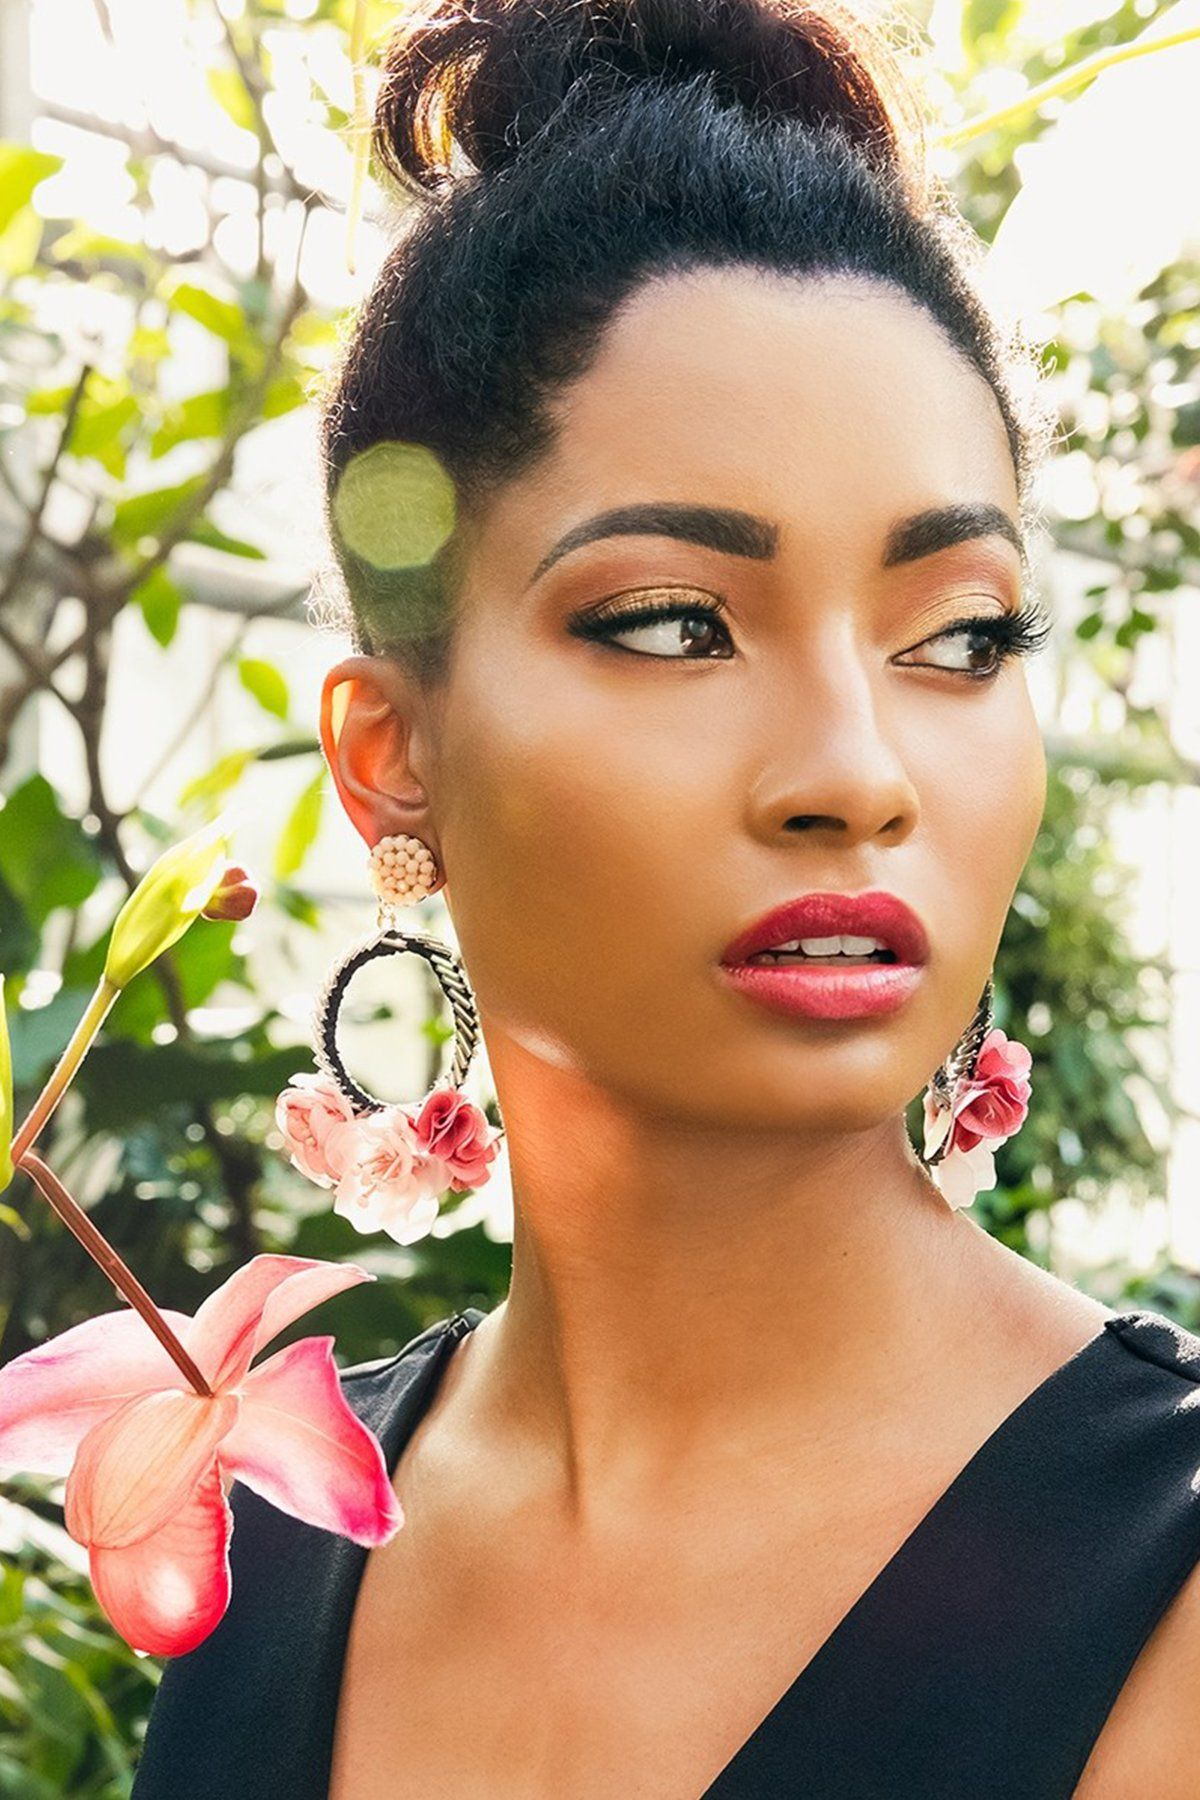 Finally your clipon Earrings are here! These are light